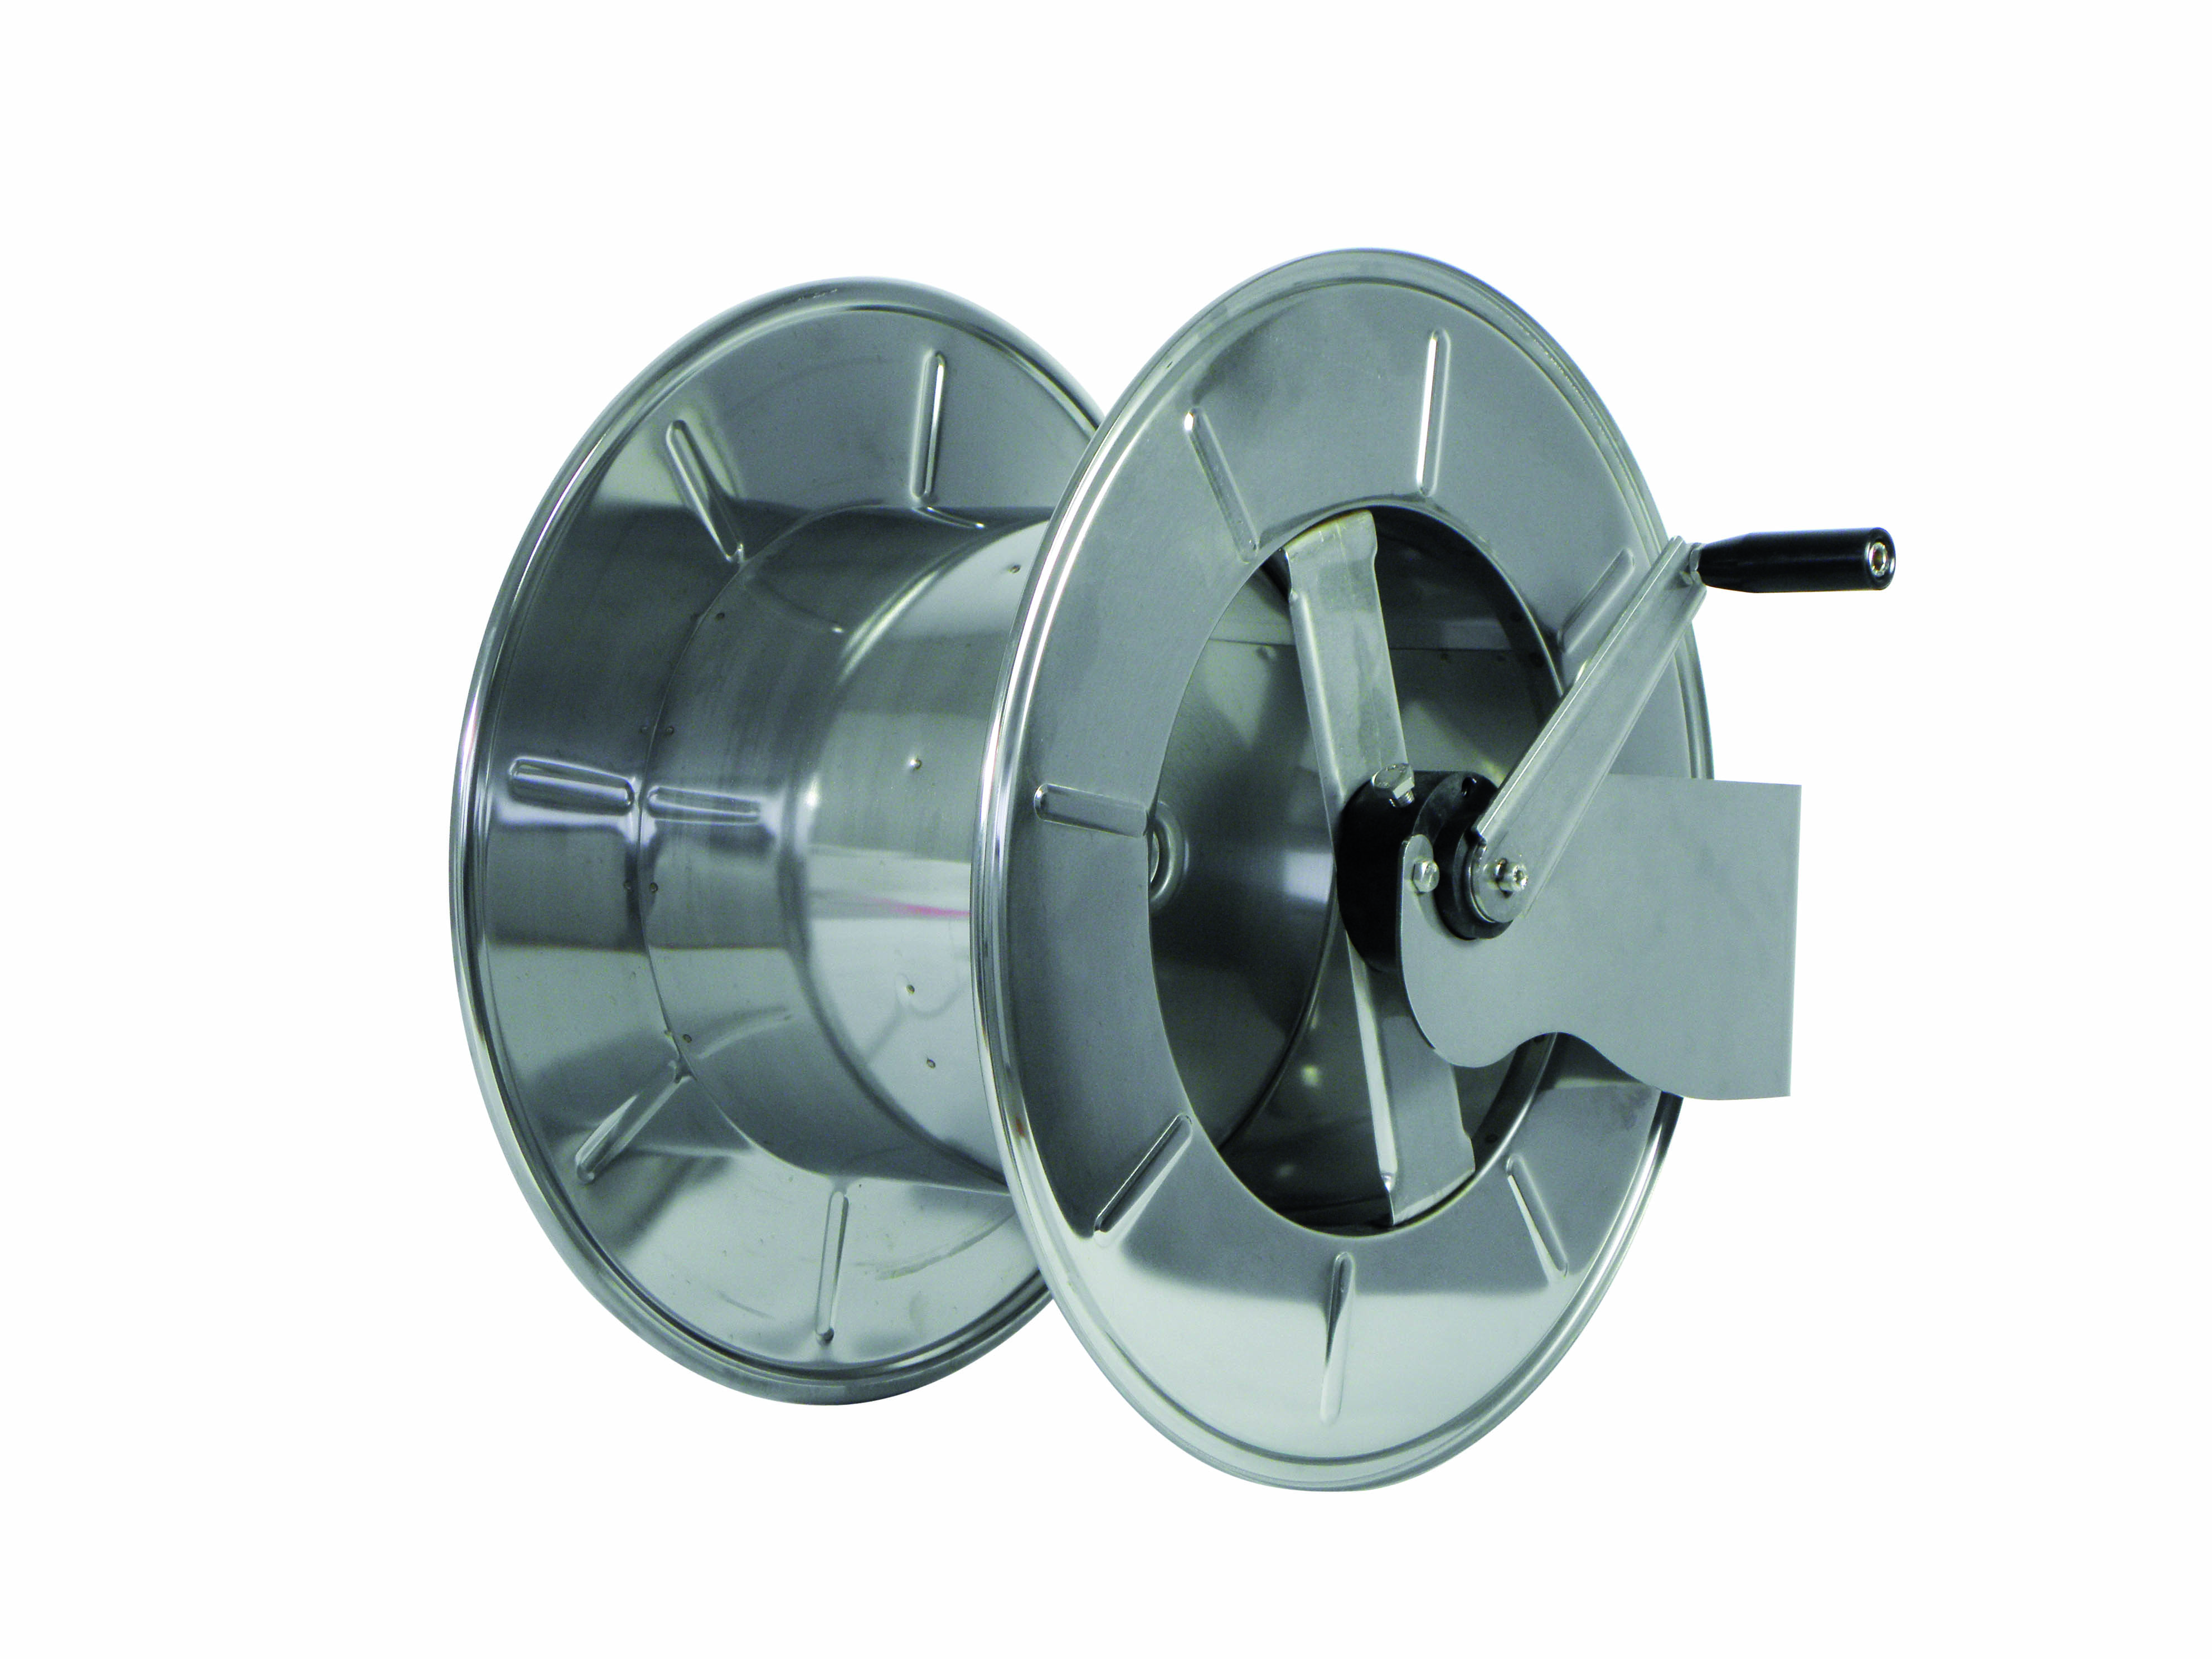 AVM9940 400 - Hose reels for Water -  High Pressure up to 400 BAR/5800 PSI